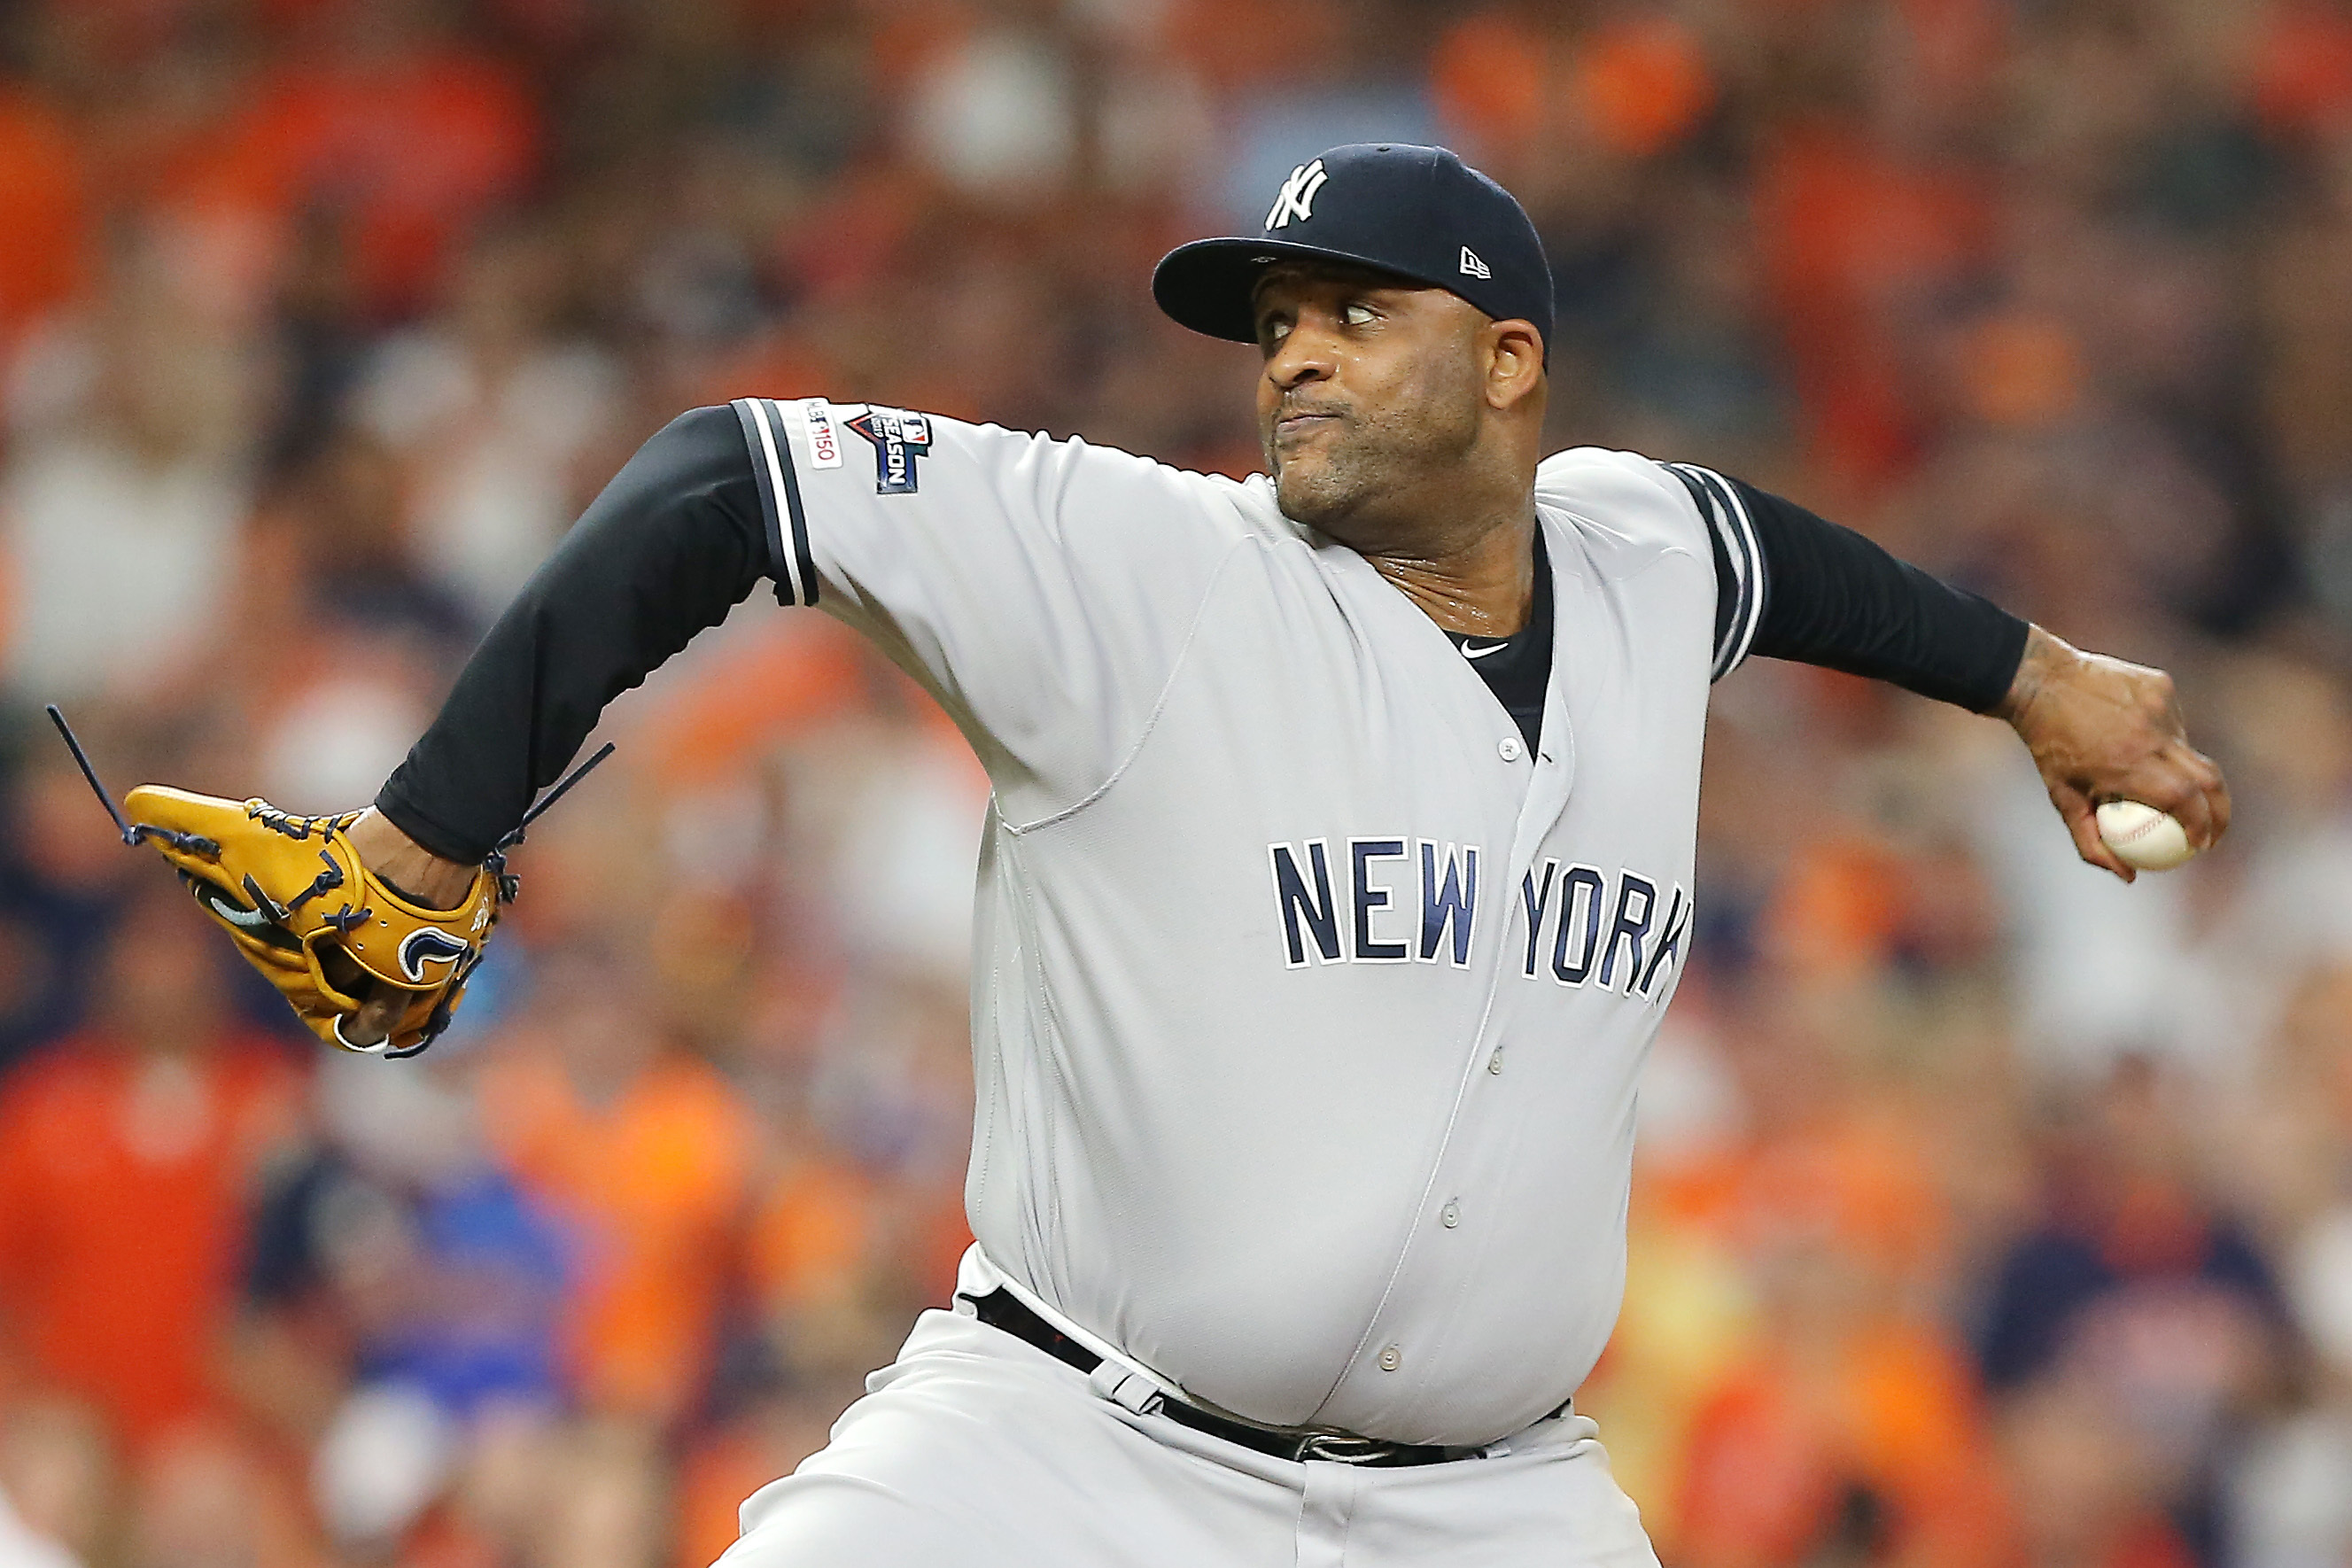 Former Yankees SP CC Sabathia Says He Thinks He Tore His ACL on Skiing Trip